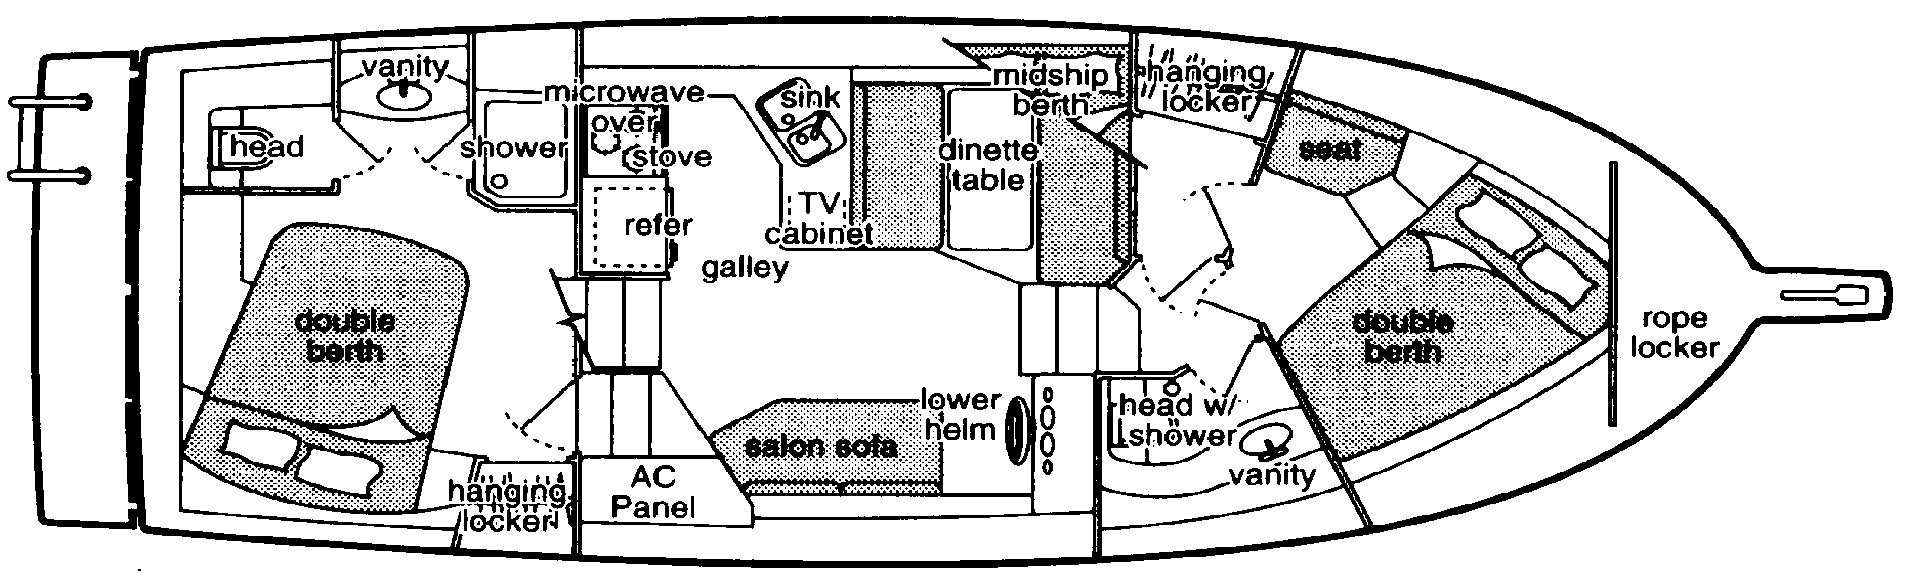 3587 Motor Yacht Floor Plan 1